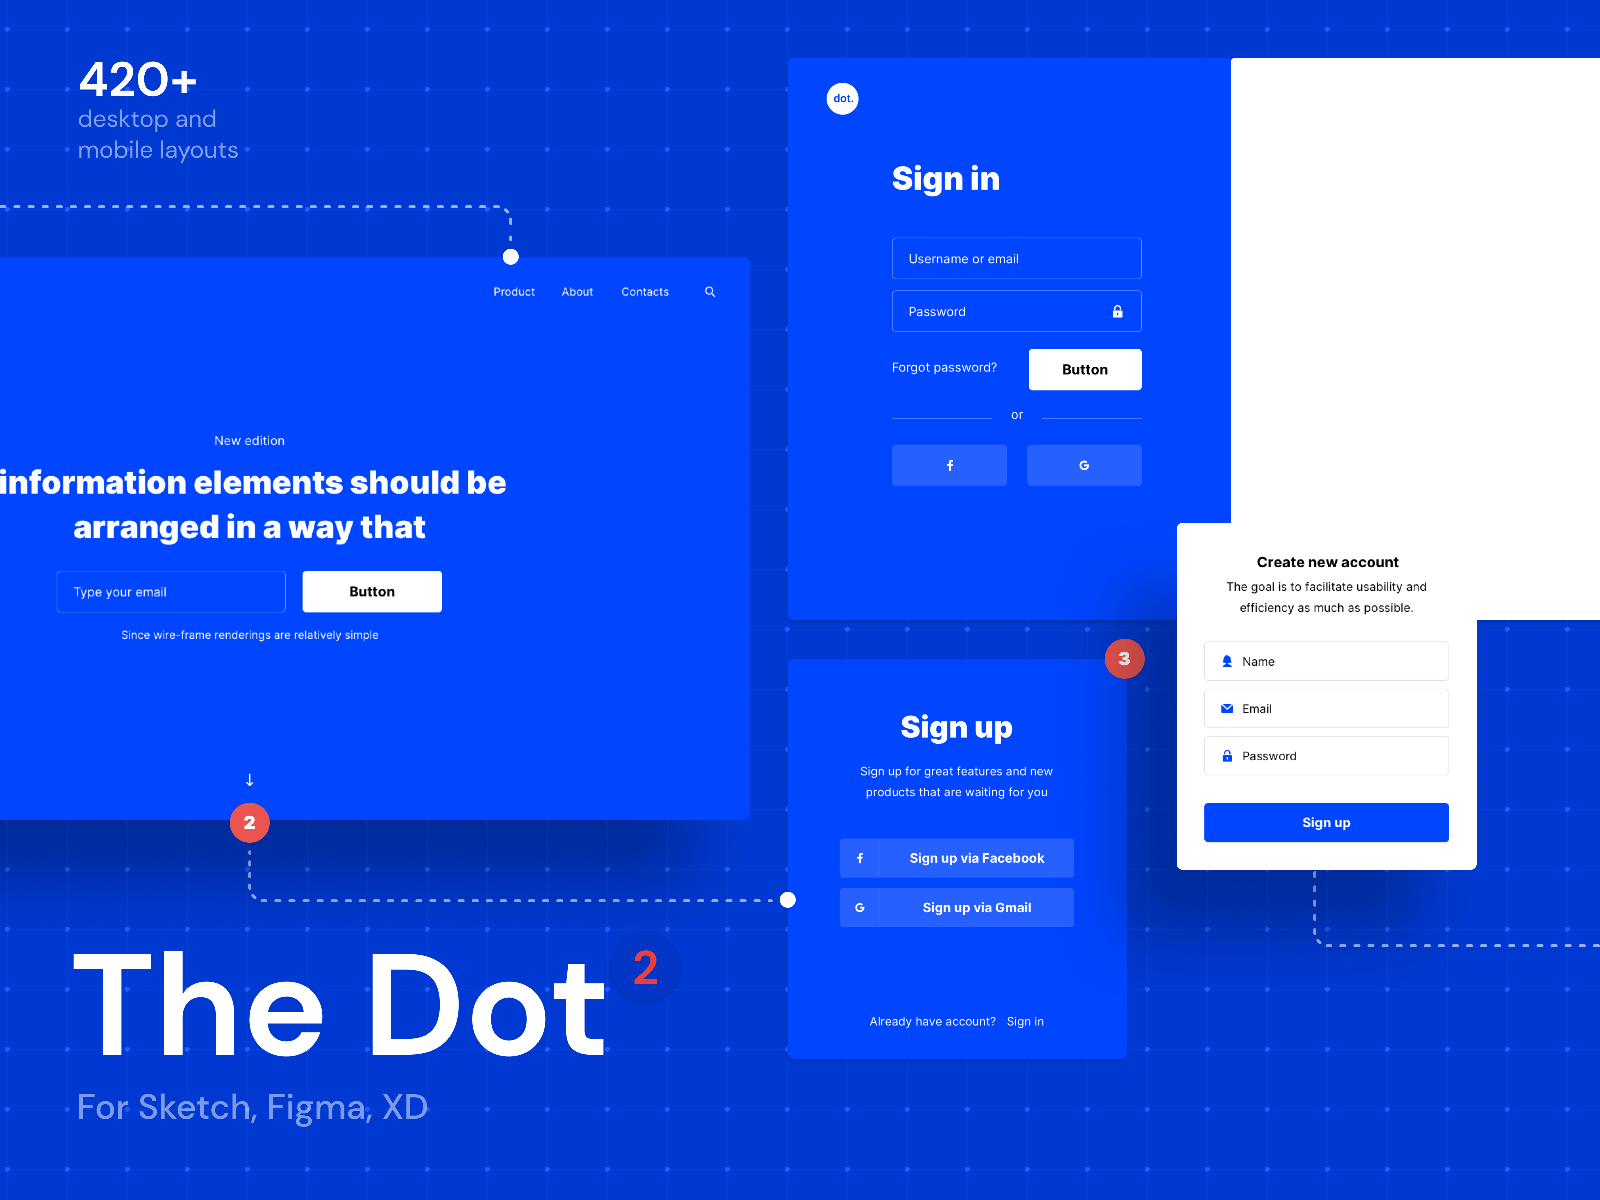 Preview of some design elements from the Dot 2 Wireframe Kit